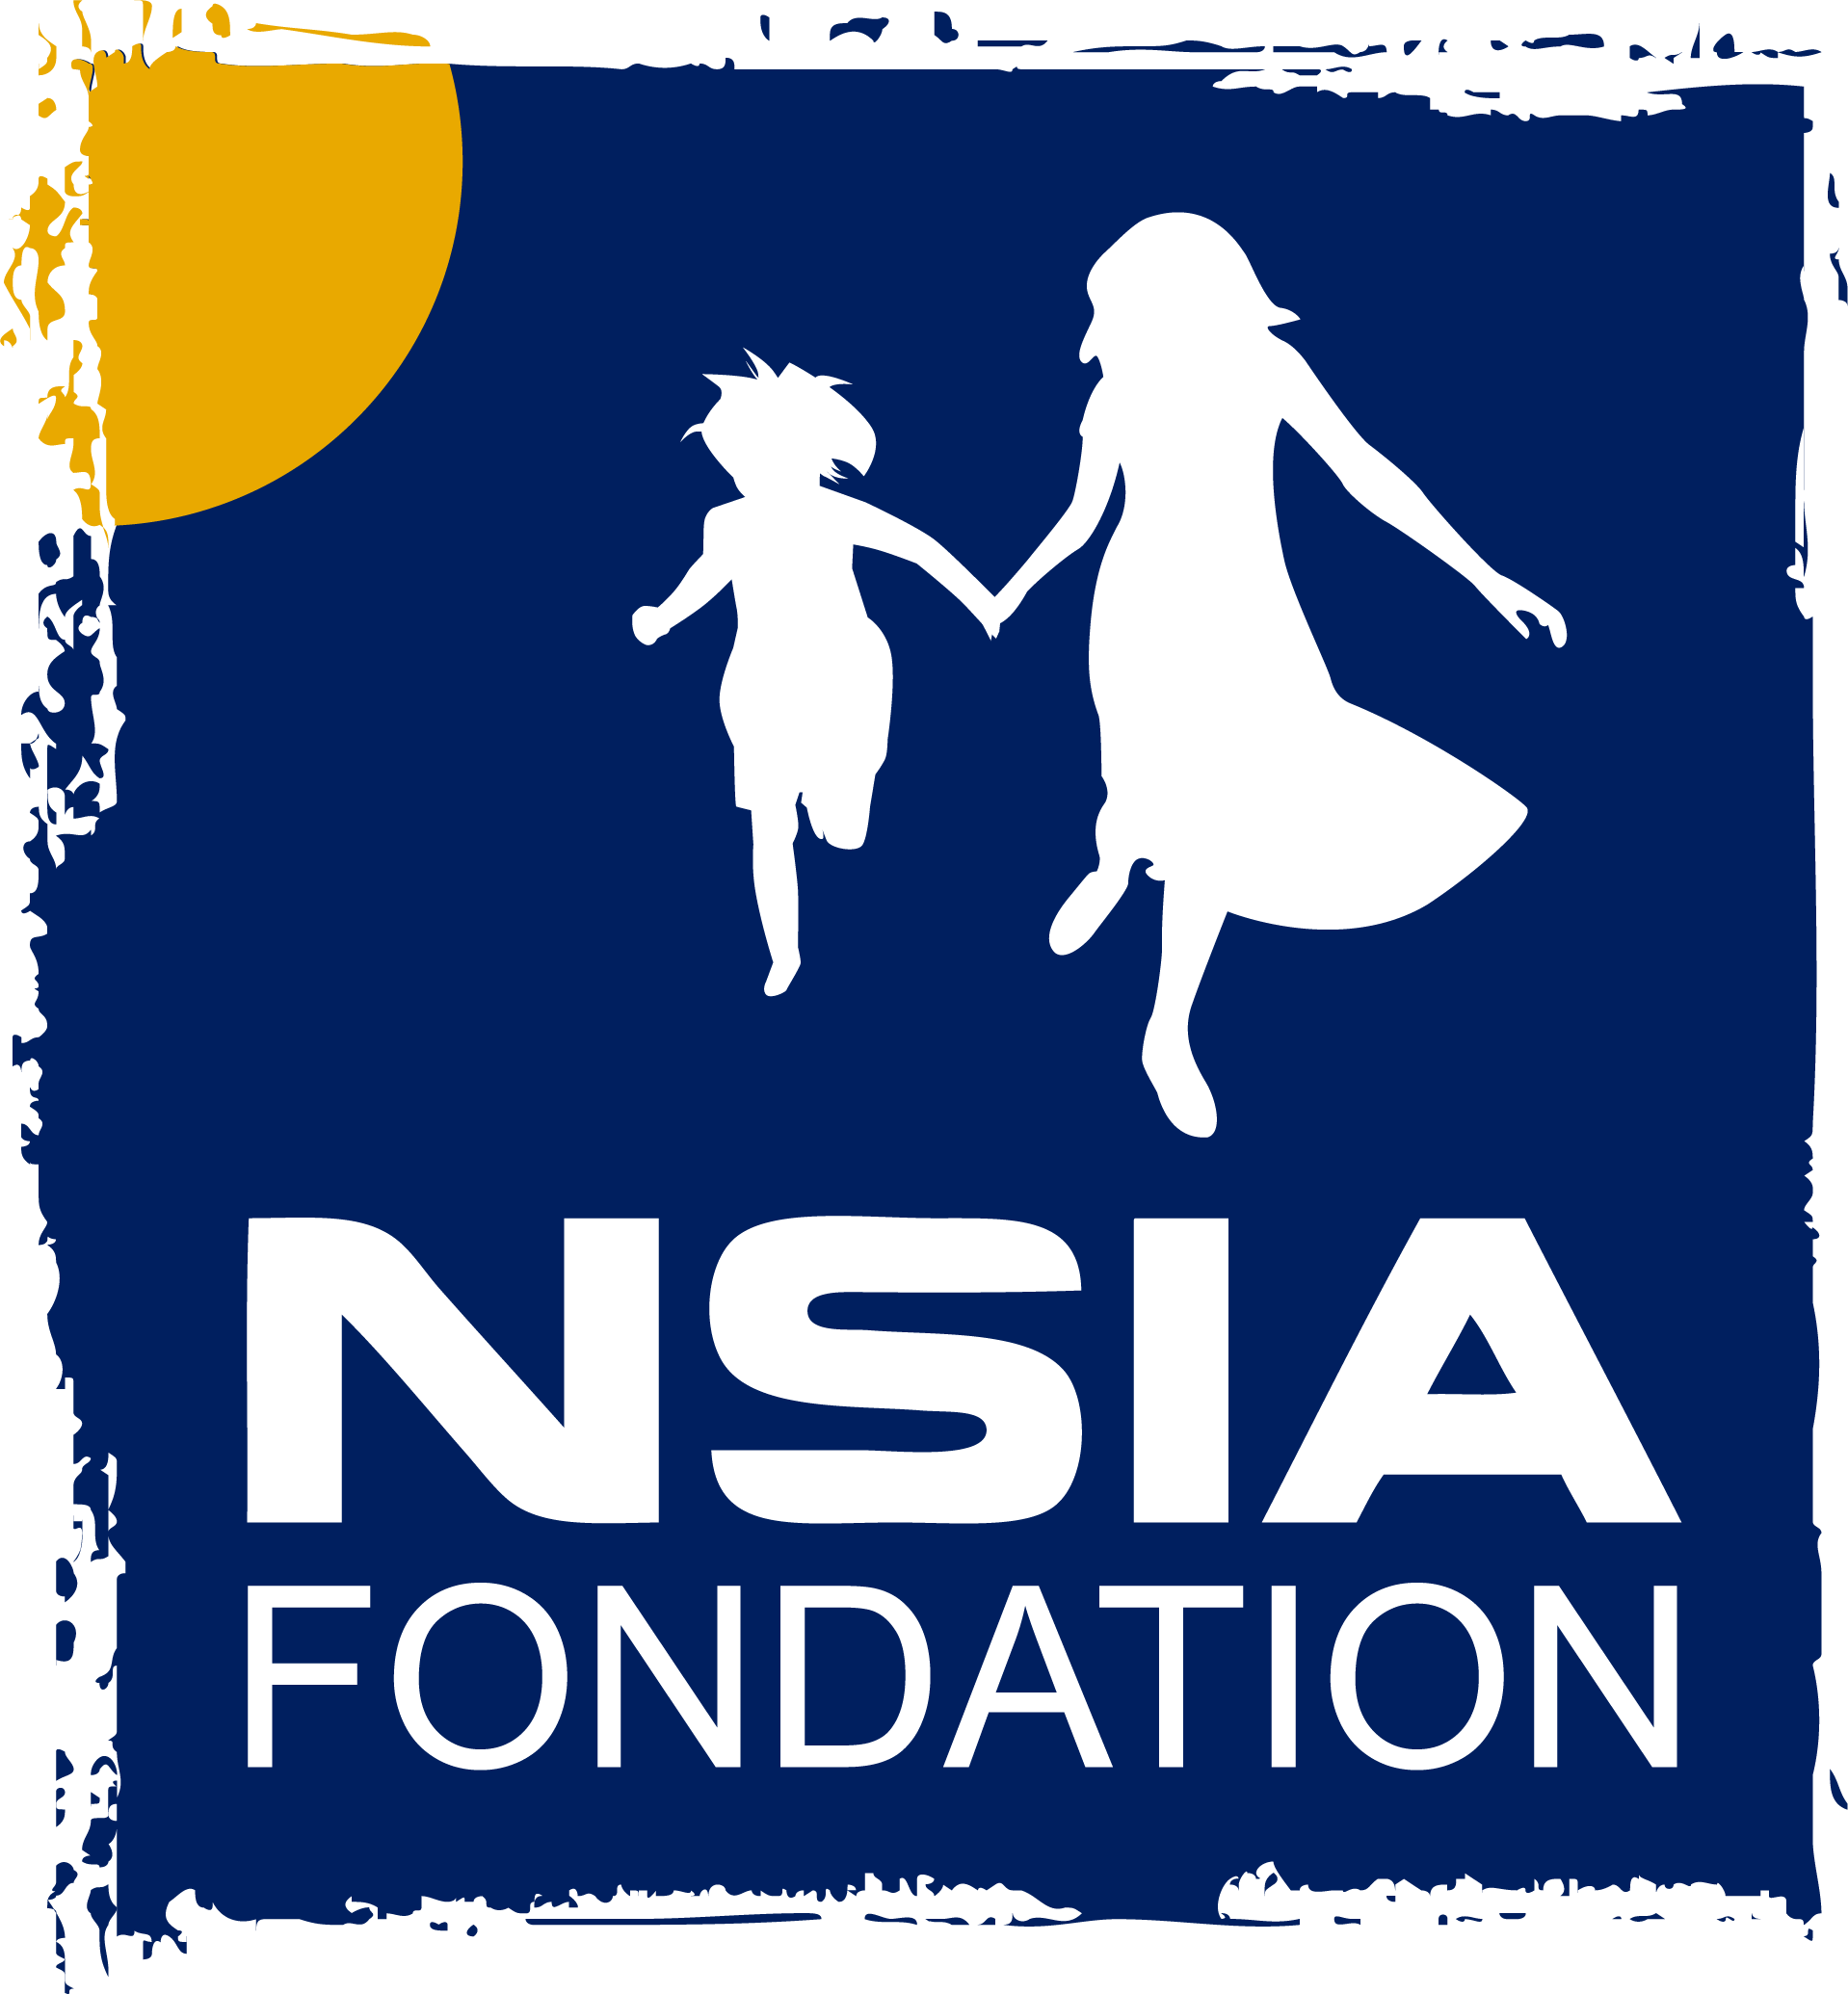 NSIA Fondation